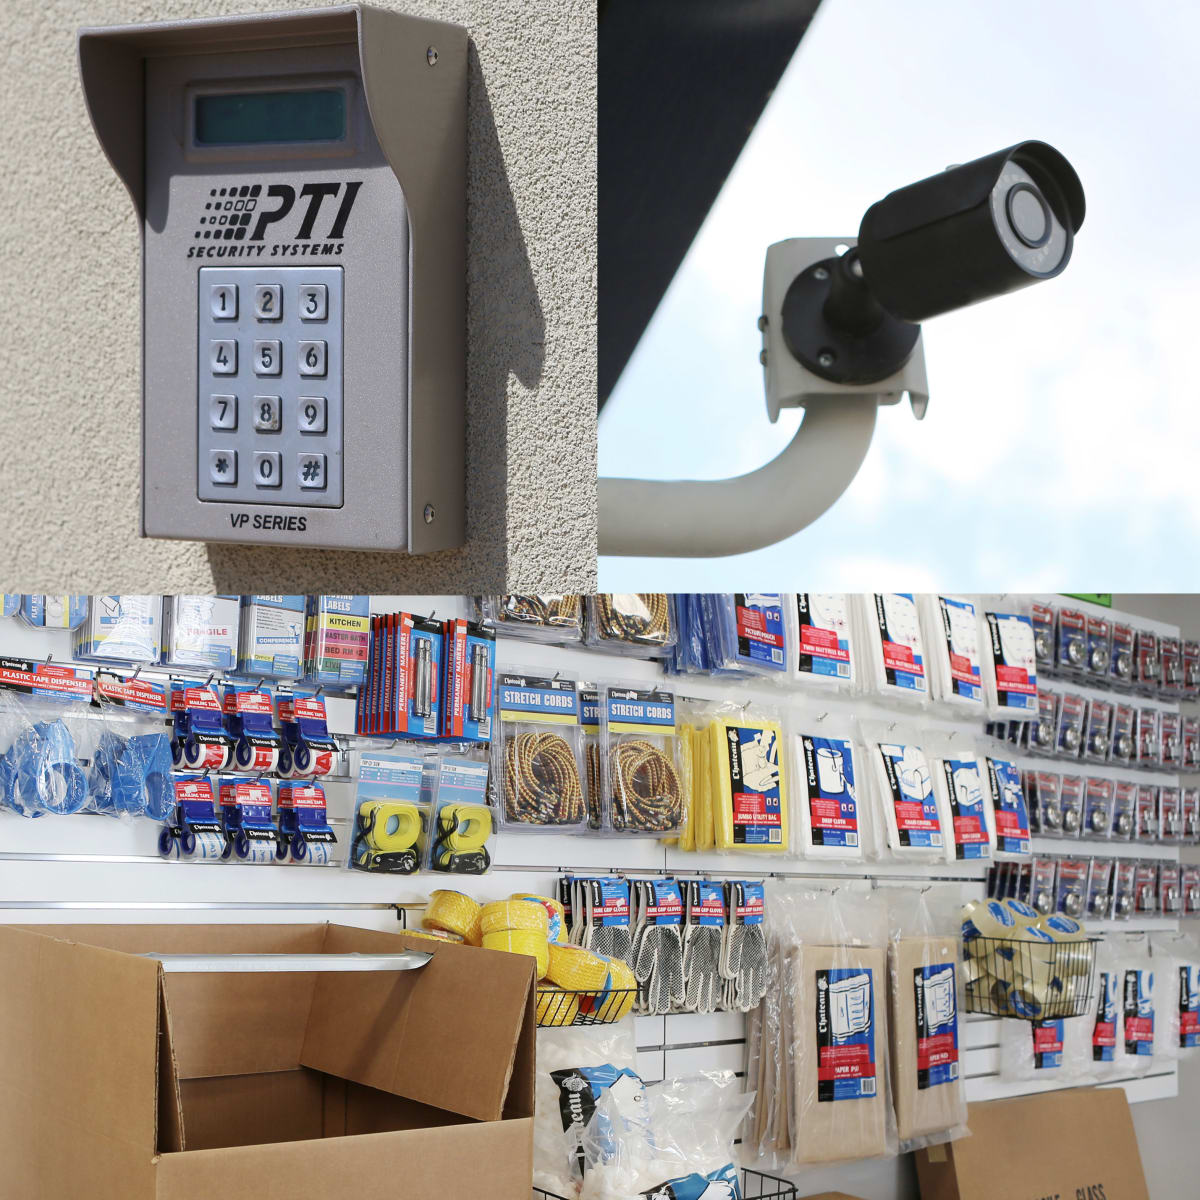 We provide 24 hour security monitoring and sell various moving and packing supplies at Midgard Self Storage in Rock Hill, South Carolina